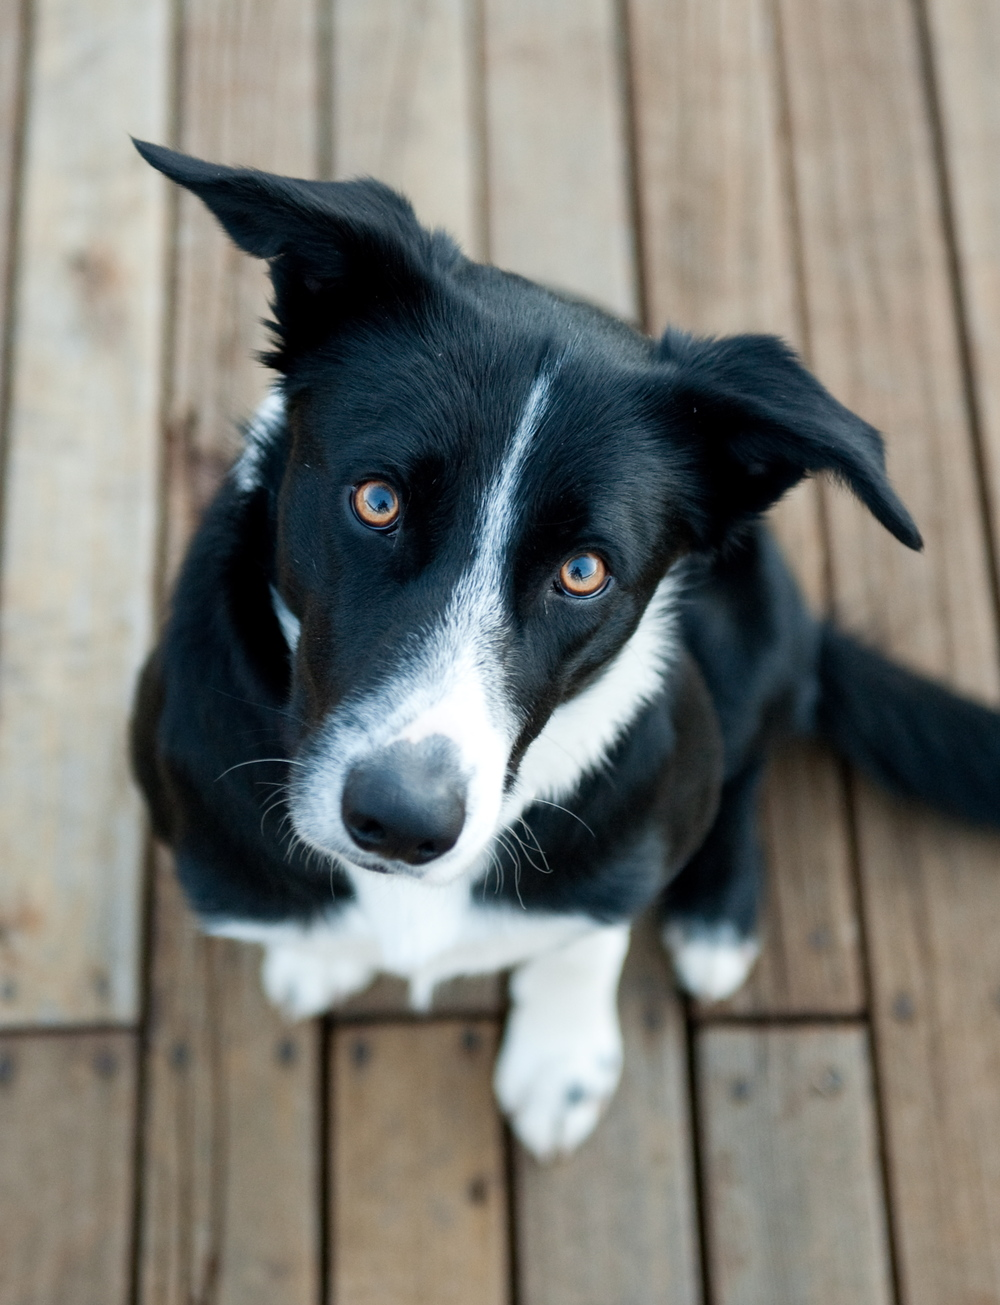 Tillman is the official mascot of AJD Builders. TIllman is 4-years old and a Kelpie / Border Collie cross-breed. He enjoys meeting new people, going for rides in the company trucks, and water sports.